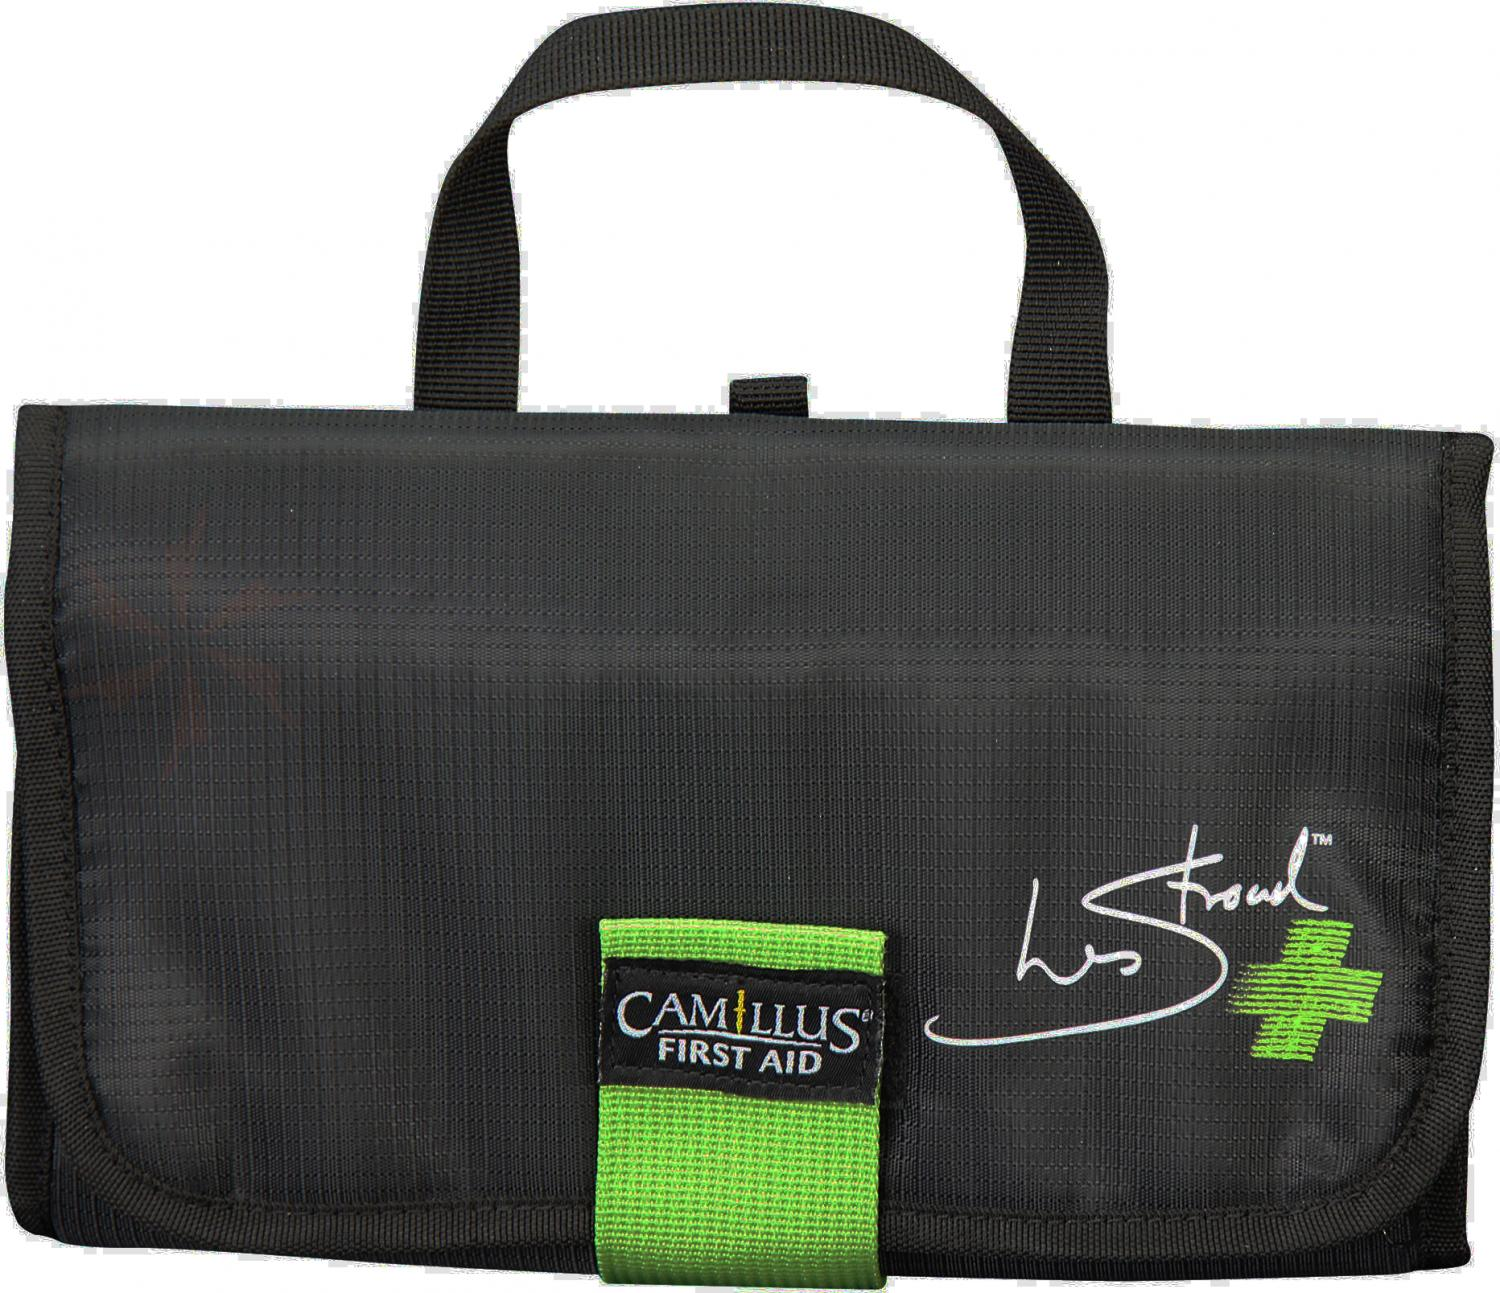 Camillus Les Stroud Signatures Series Rollout First Aid Kit (90387)